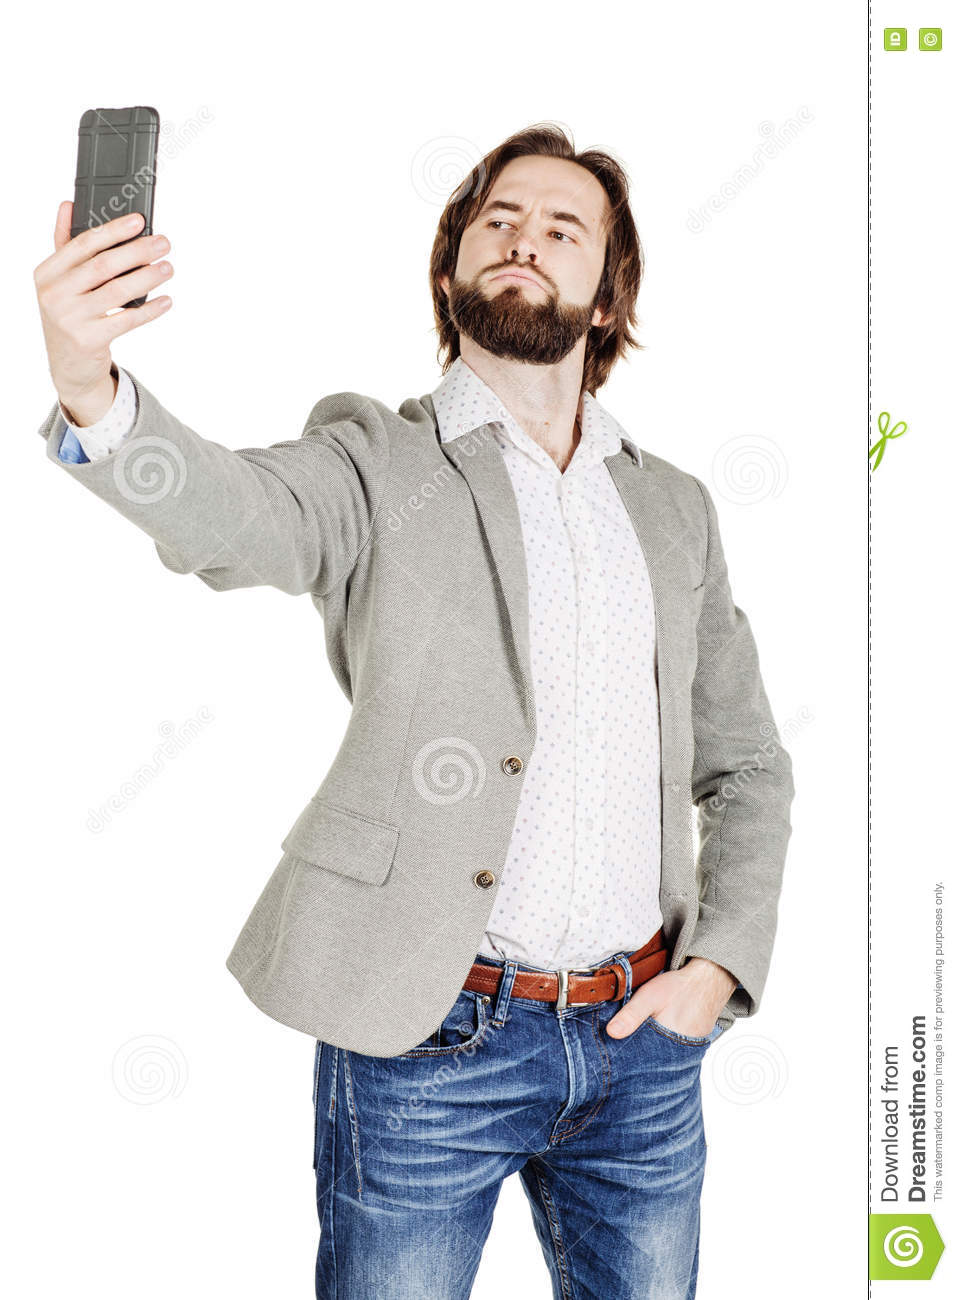 bearded young business man taking selfie smiling. portrait isolated over white studio background.